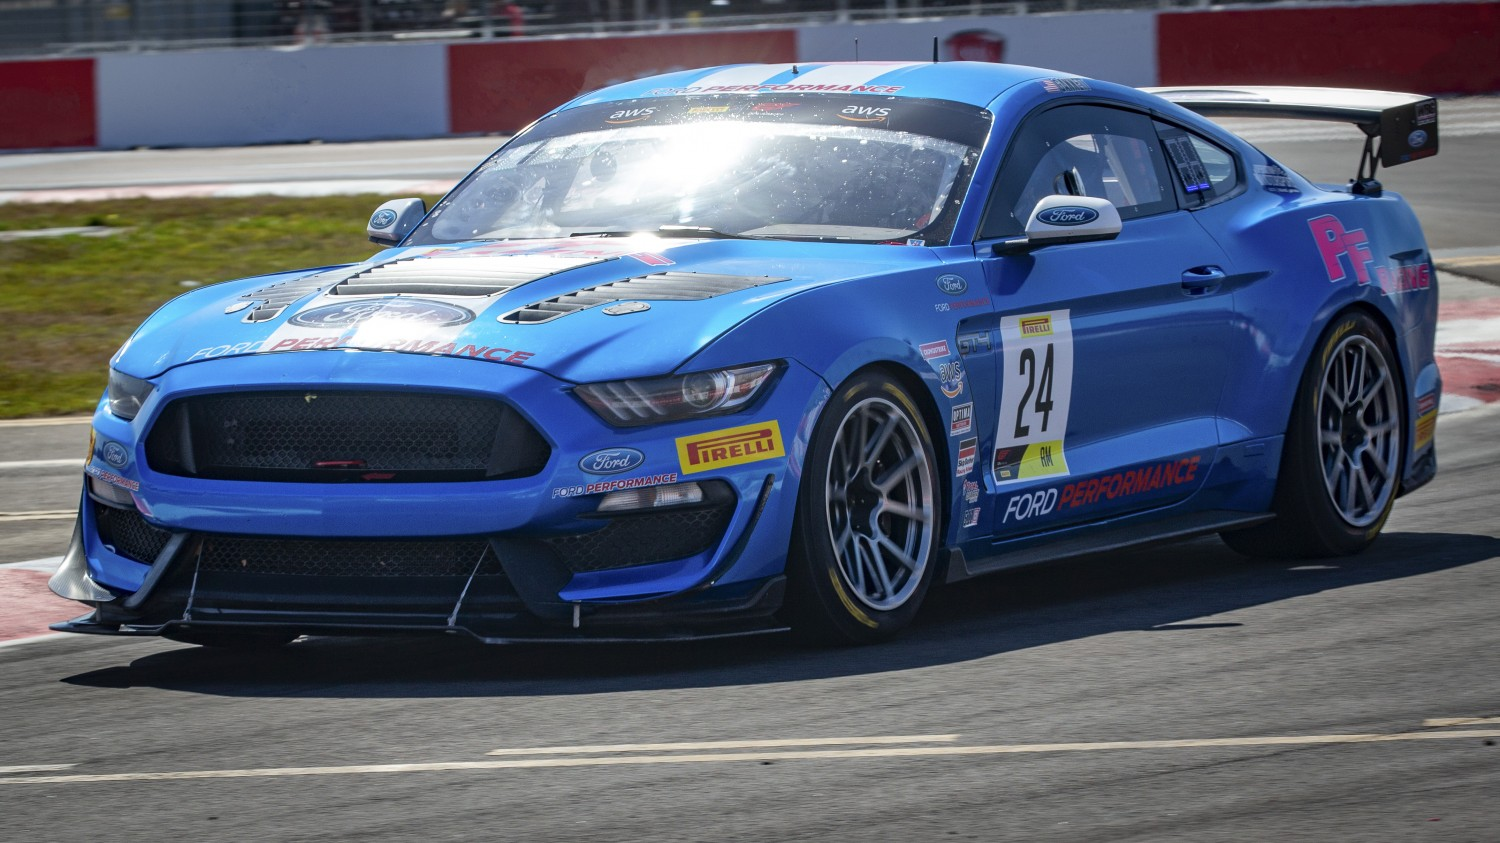 #24 GT4 Sprint, Am, Ian Lacy Racing, Frank Gannett, Ford Mustang GT4 SRO Motorsports Group America, St. Pete Grand Prix, St. Petersburg, FL, March 2020